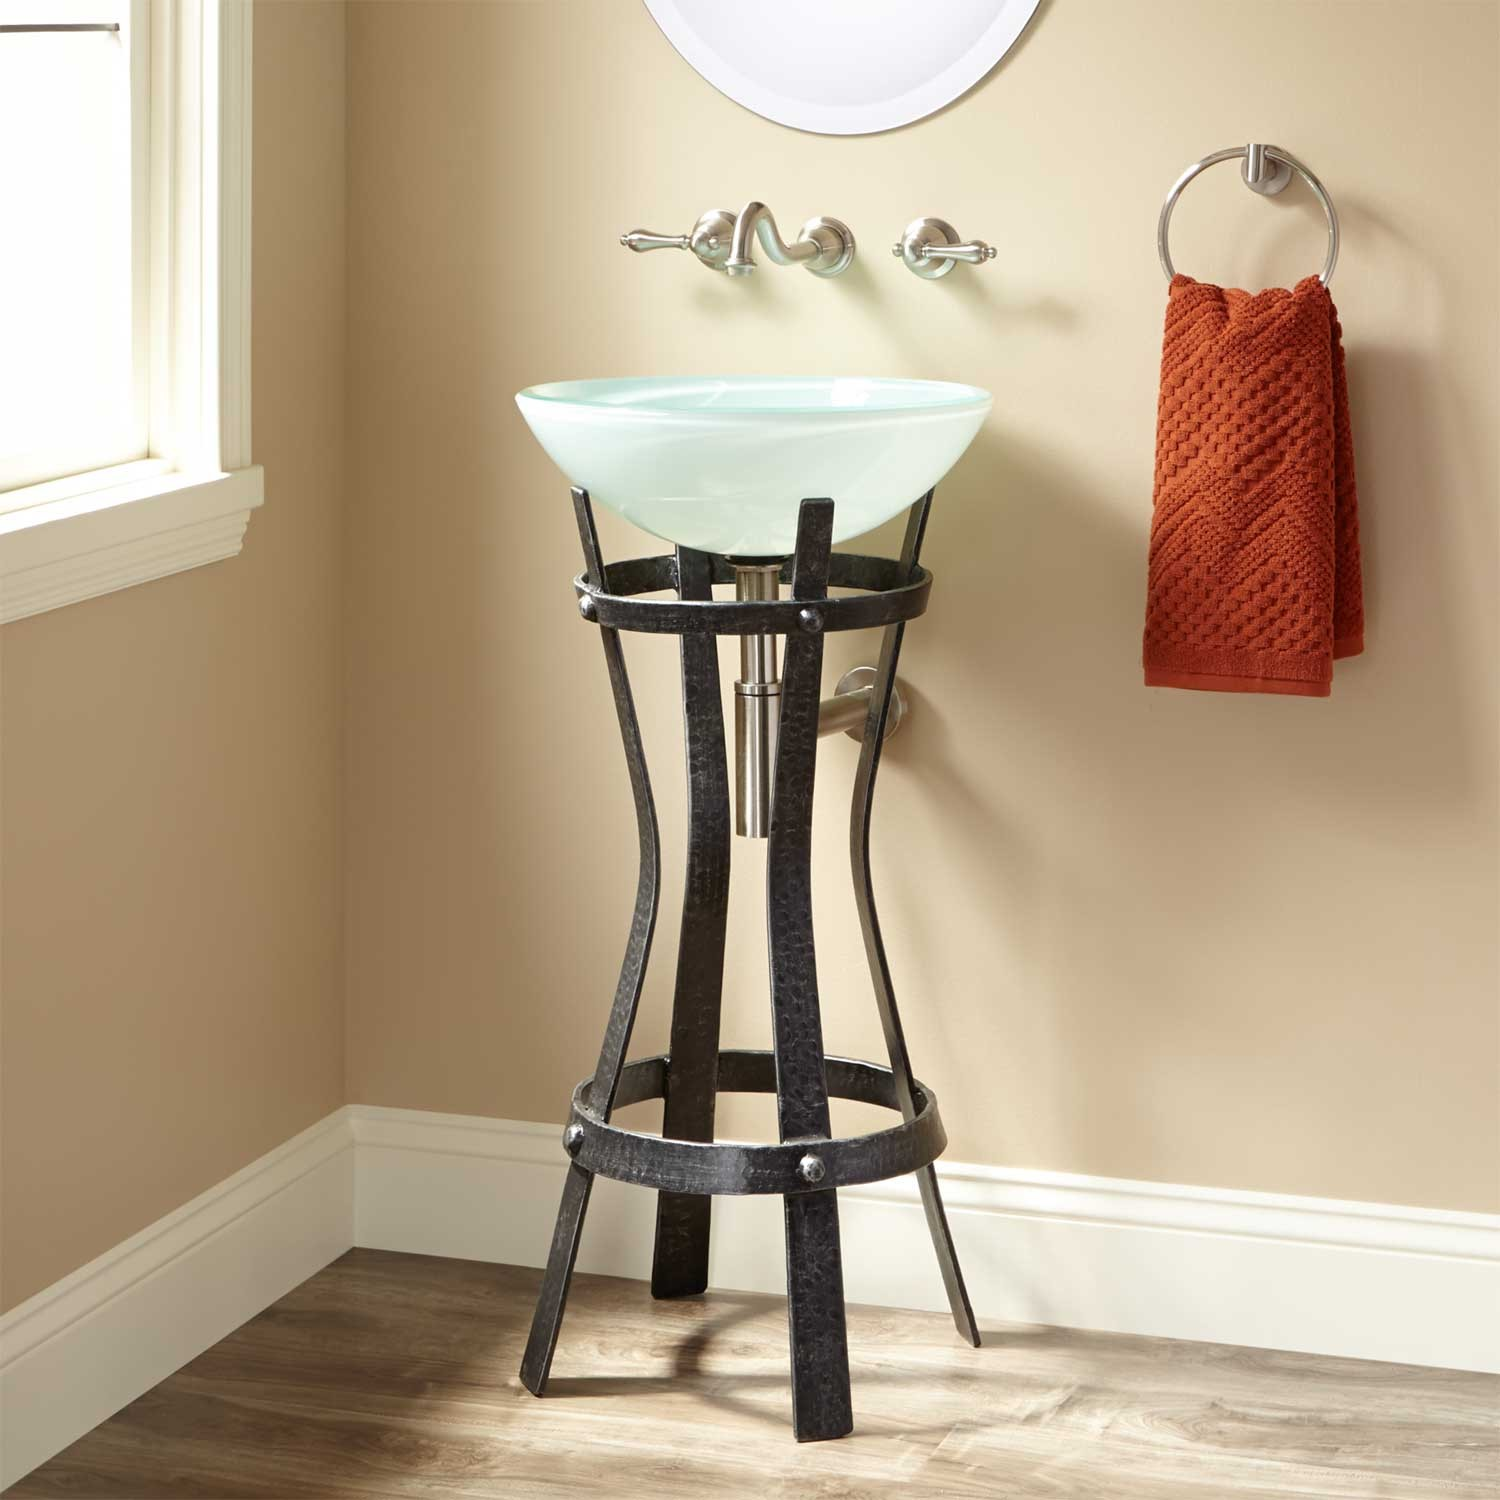 Metal Pedestal Sink